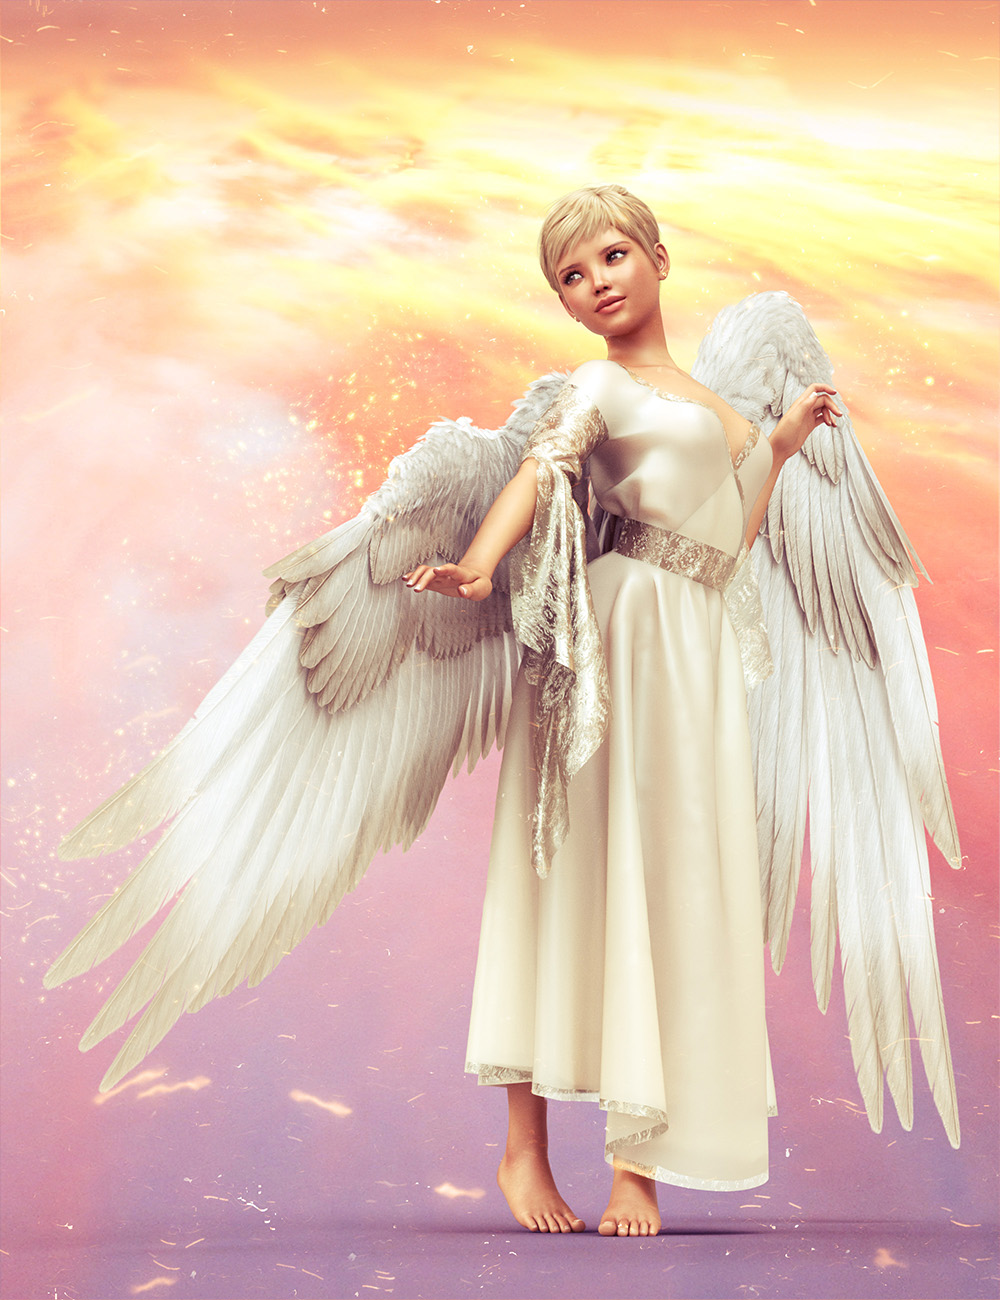 Feathered Wings for All by: 3D Universe, 3D Models by Daz 3D